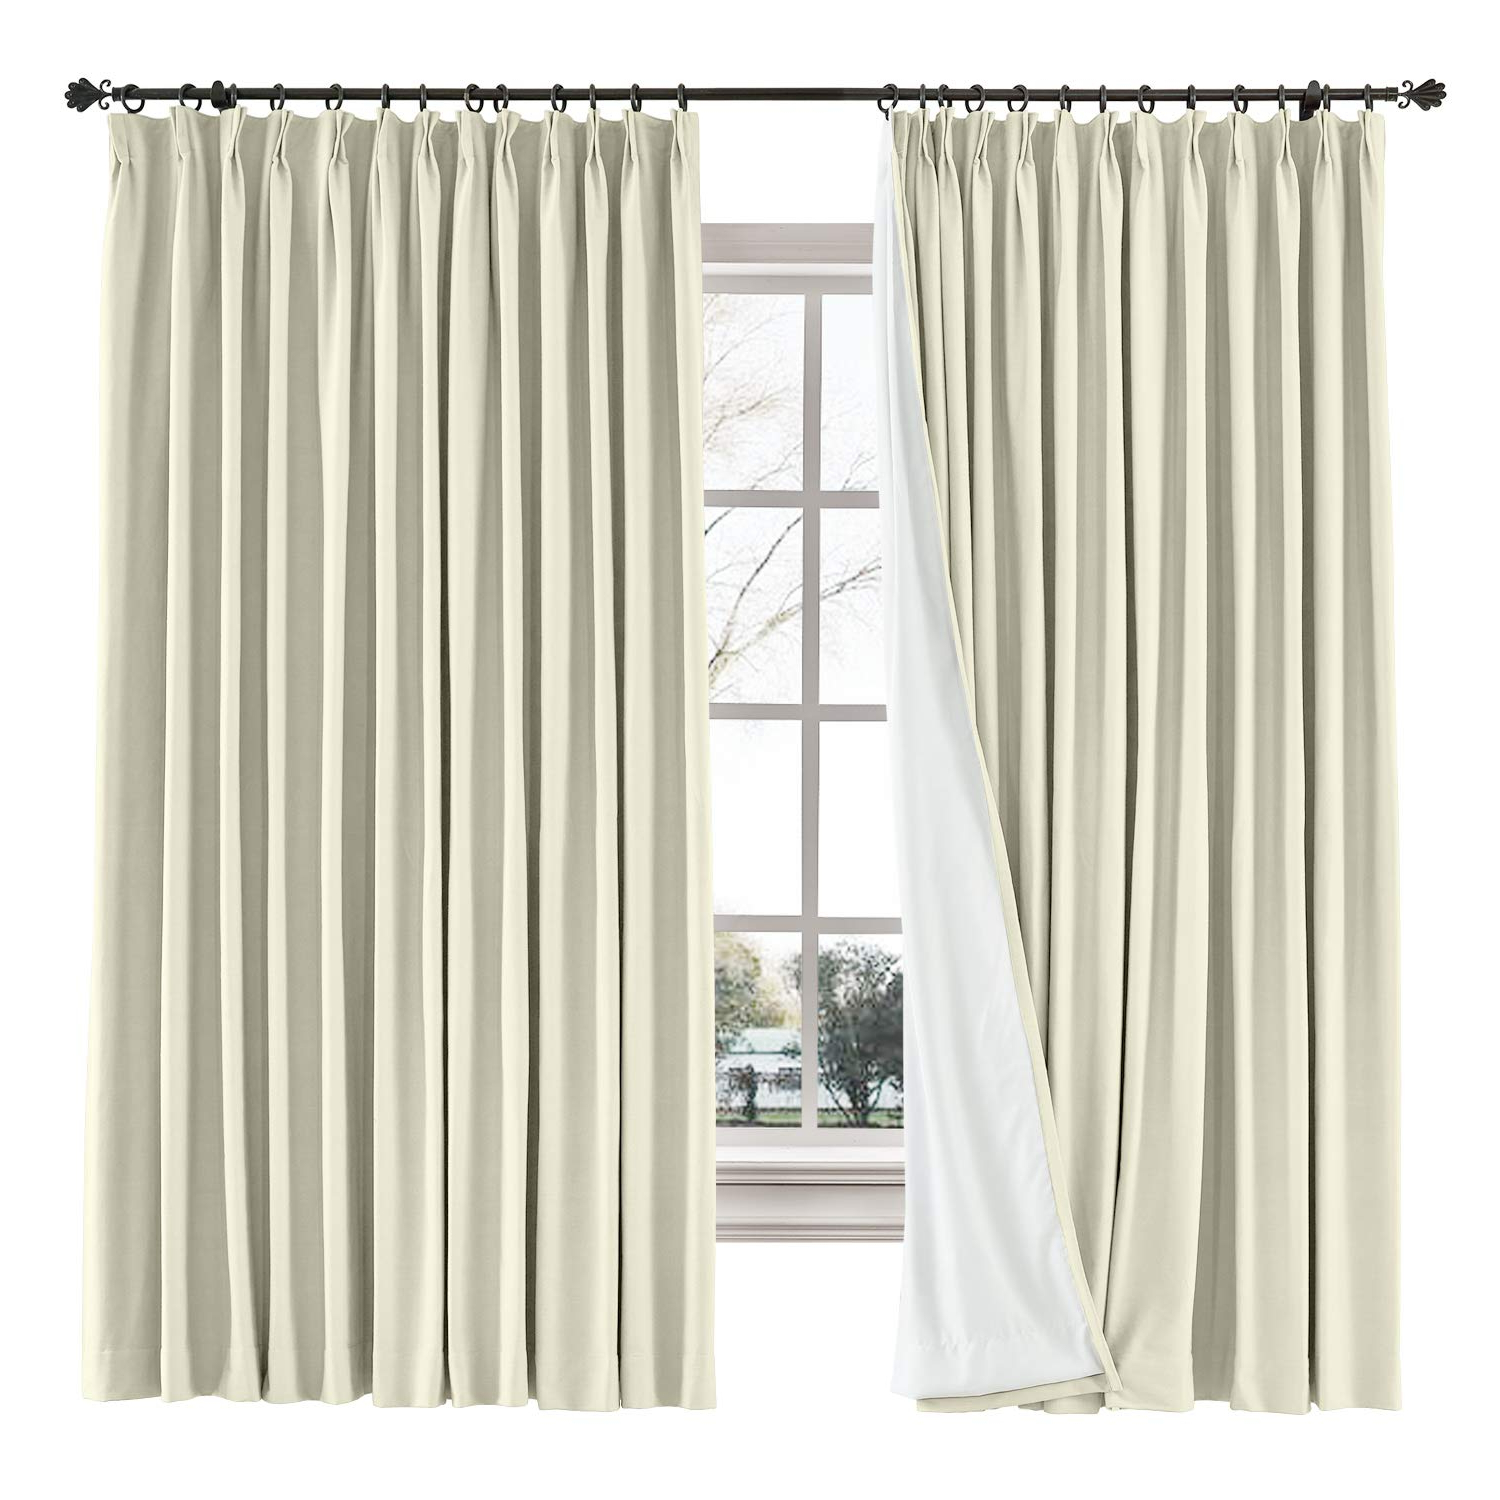 "[%Chadmade Drape Blackout Curtain Linen Cotton Drapery 85% Blackout Solid  Pinch Pleated Curtain Bedroom Living Room Family Room, 72"" W X 84"" L  (Beige, 1 For Best And Newest Solid Cotton Pleated Curtains